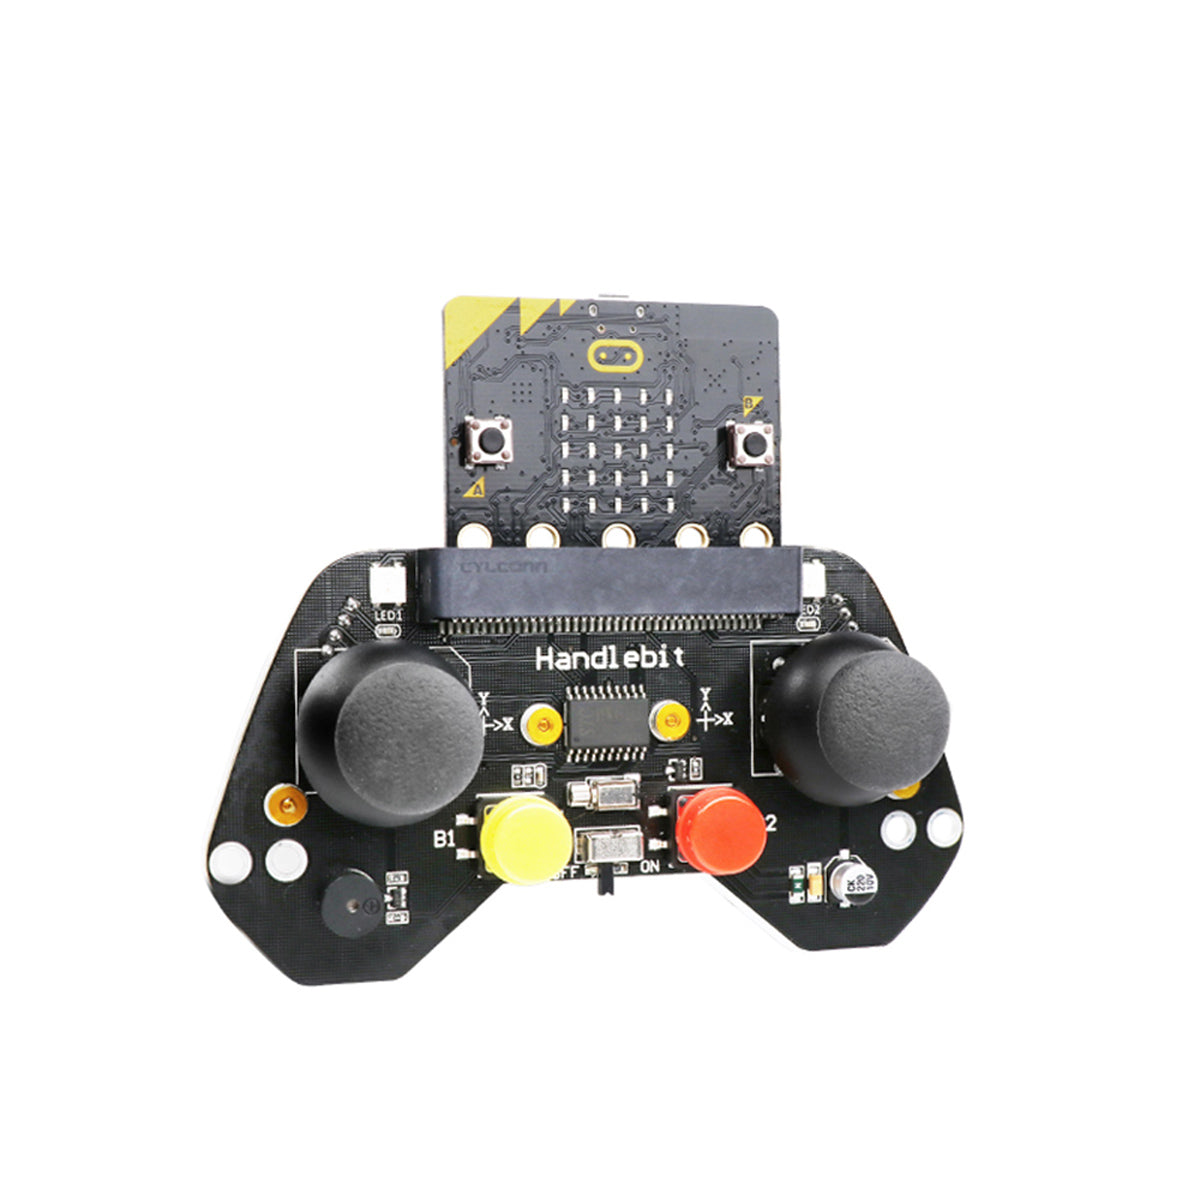 Handlebit: Hiwonder micro:bit Programmable Remote Handle Easy to Get Started